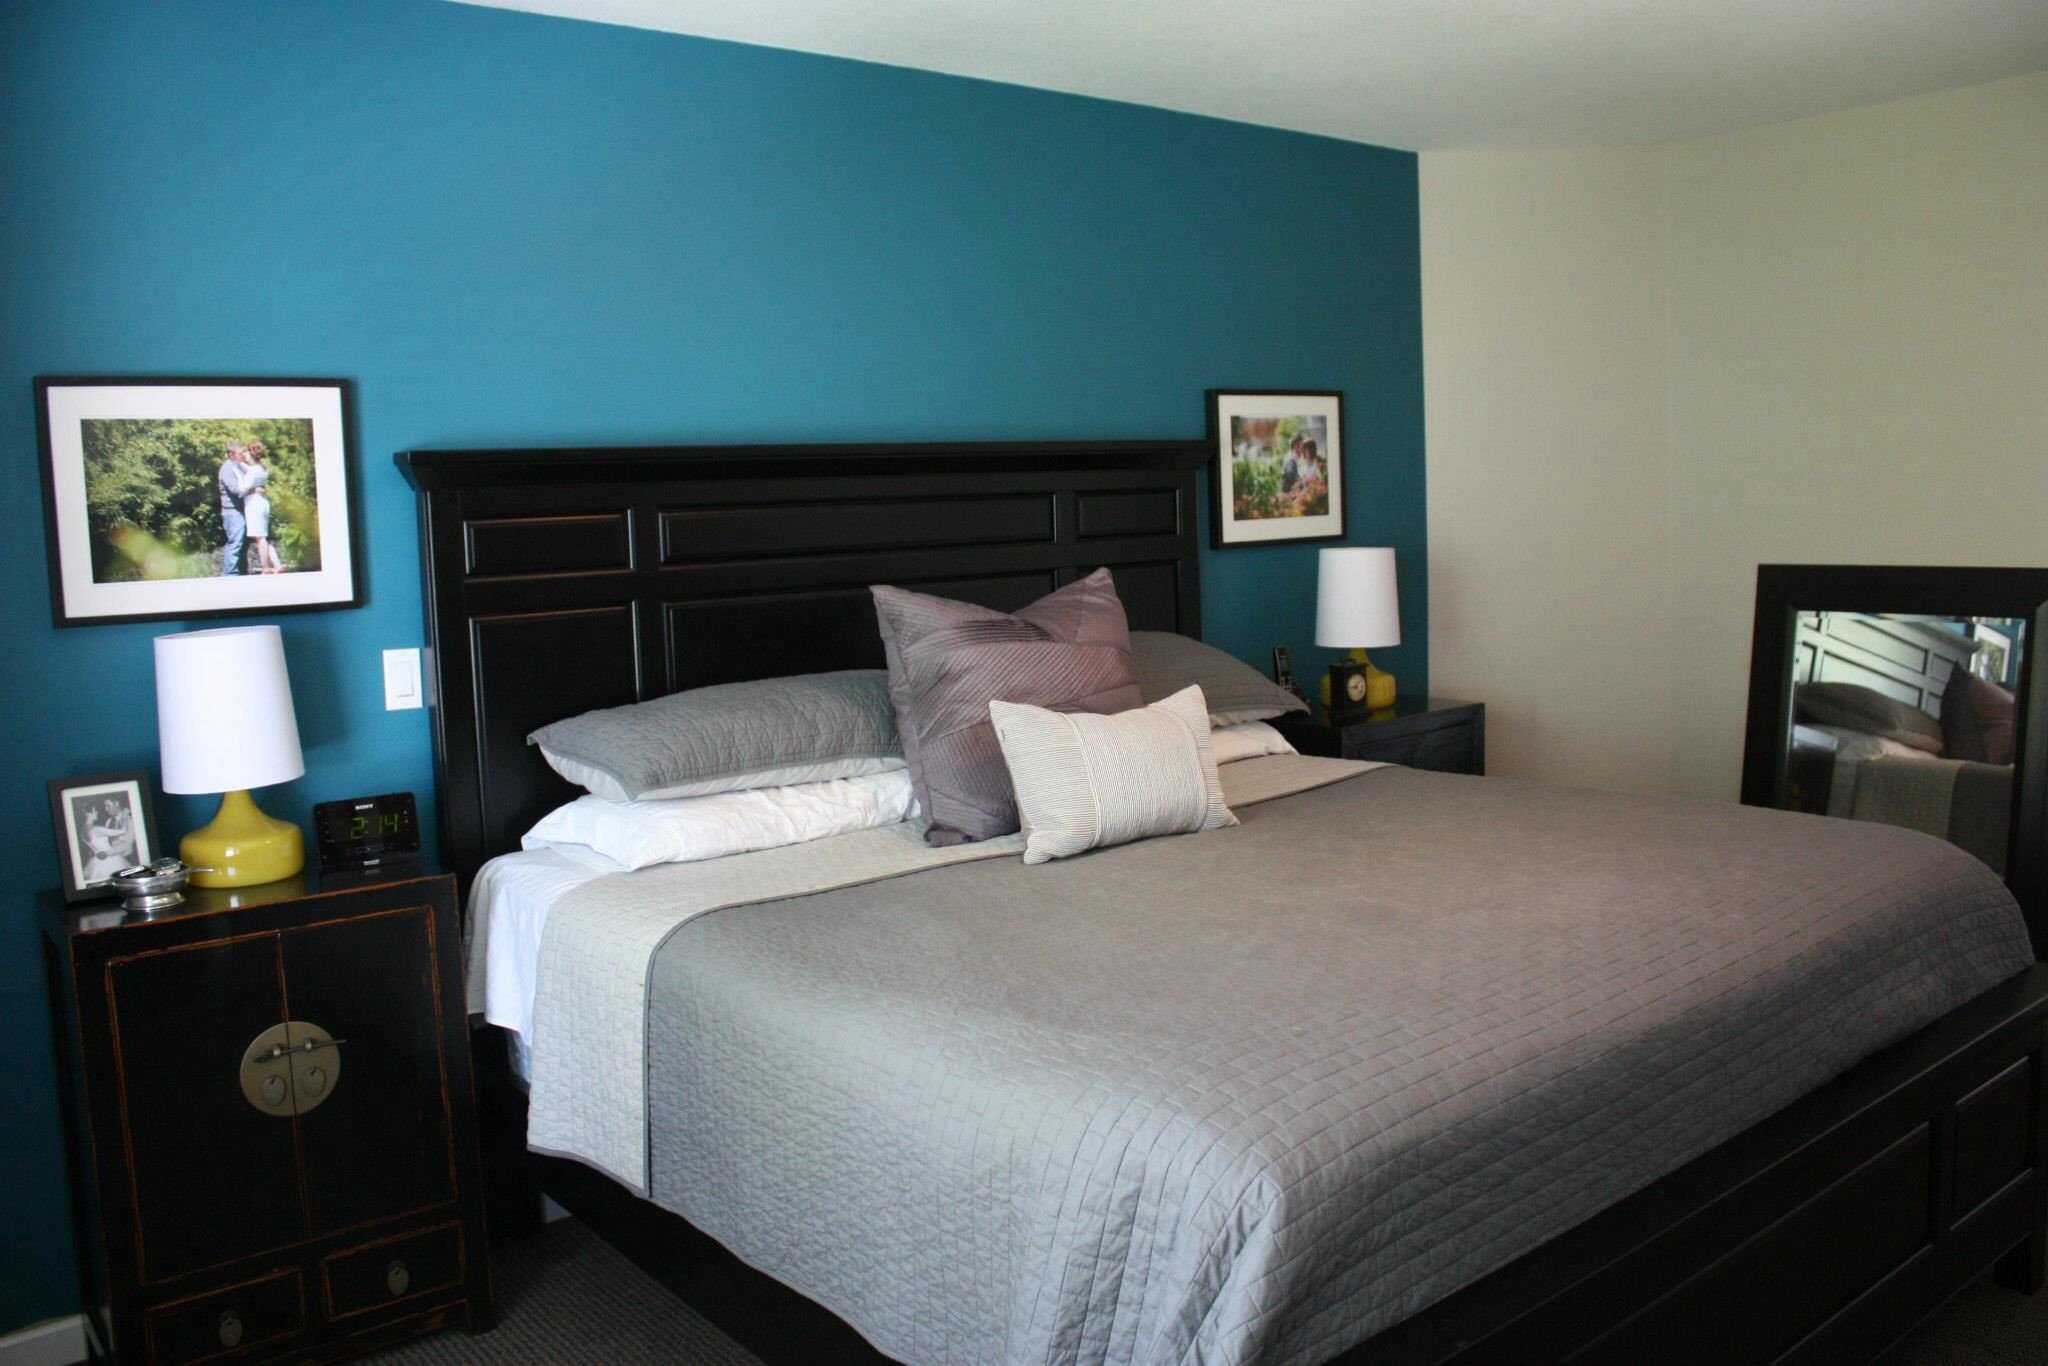 Bedroom with Black Furniture Beautiful Our Master Bedroom Black Furniture Custom asian Side